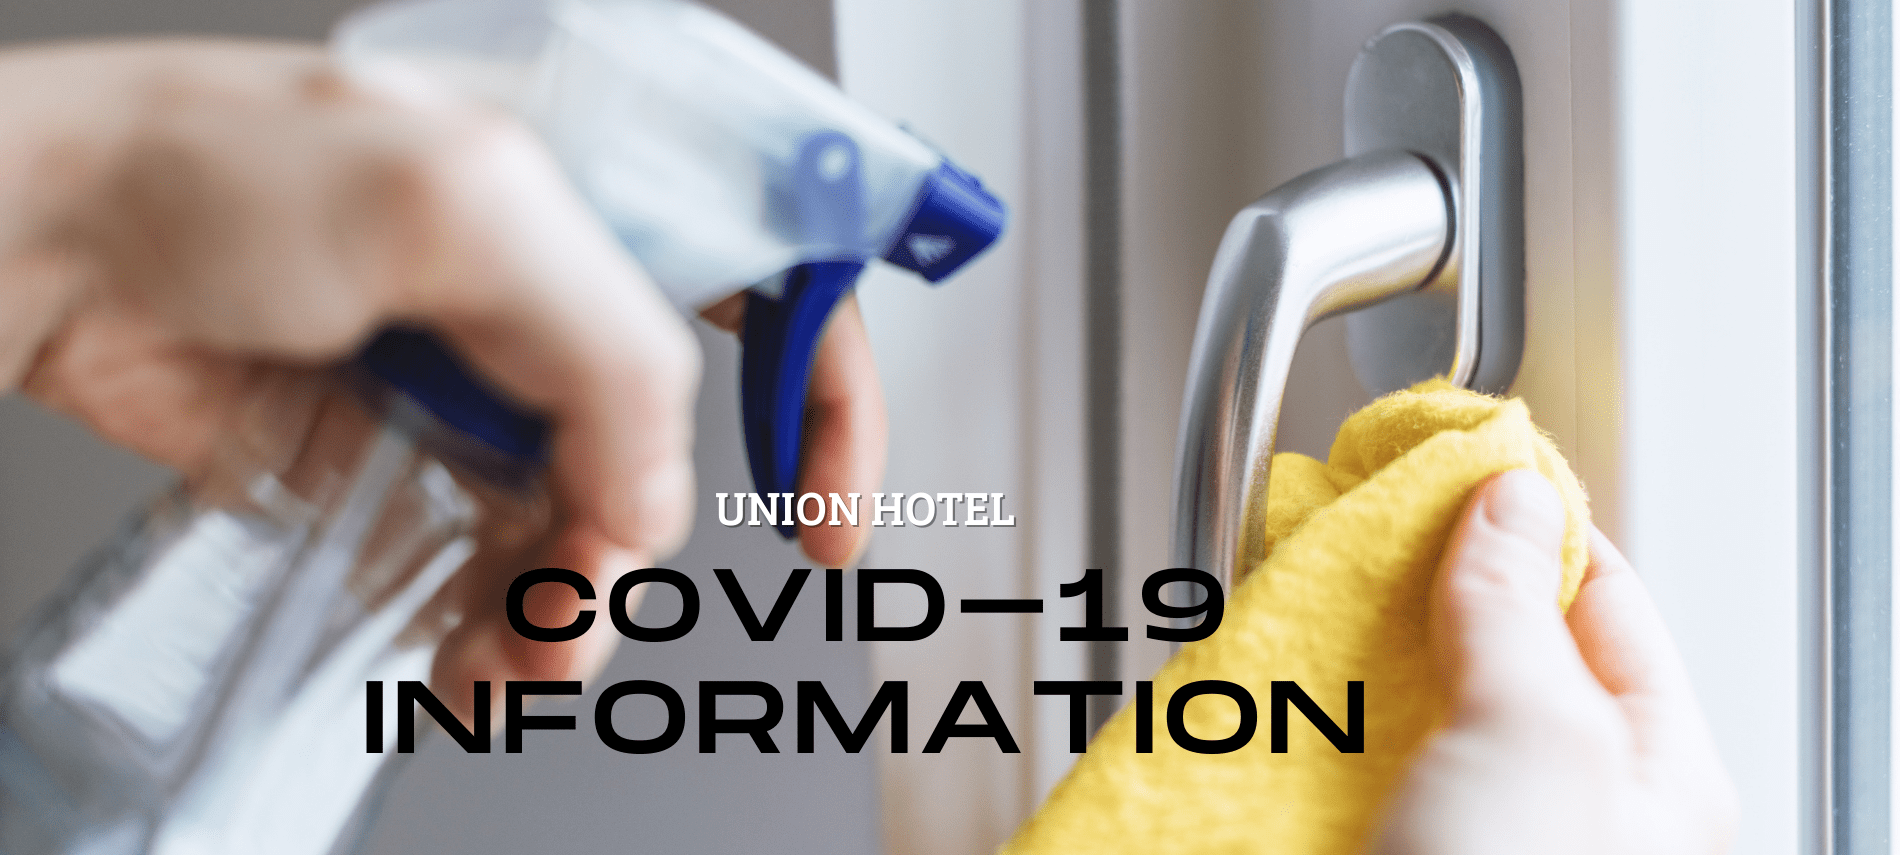 Gloved hand cleaning a door handle with text: Union Hotel COVID-19 Information